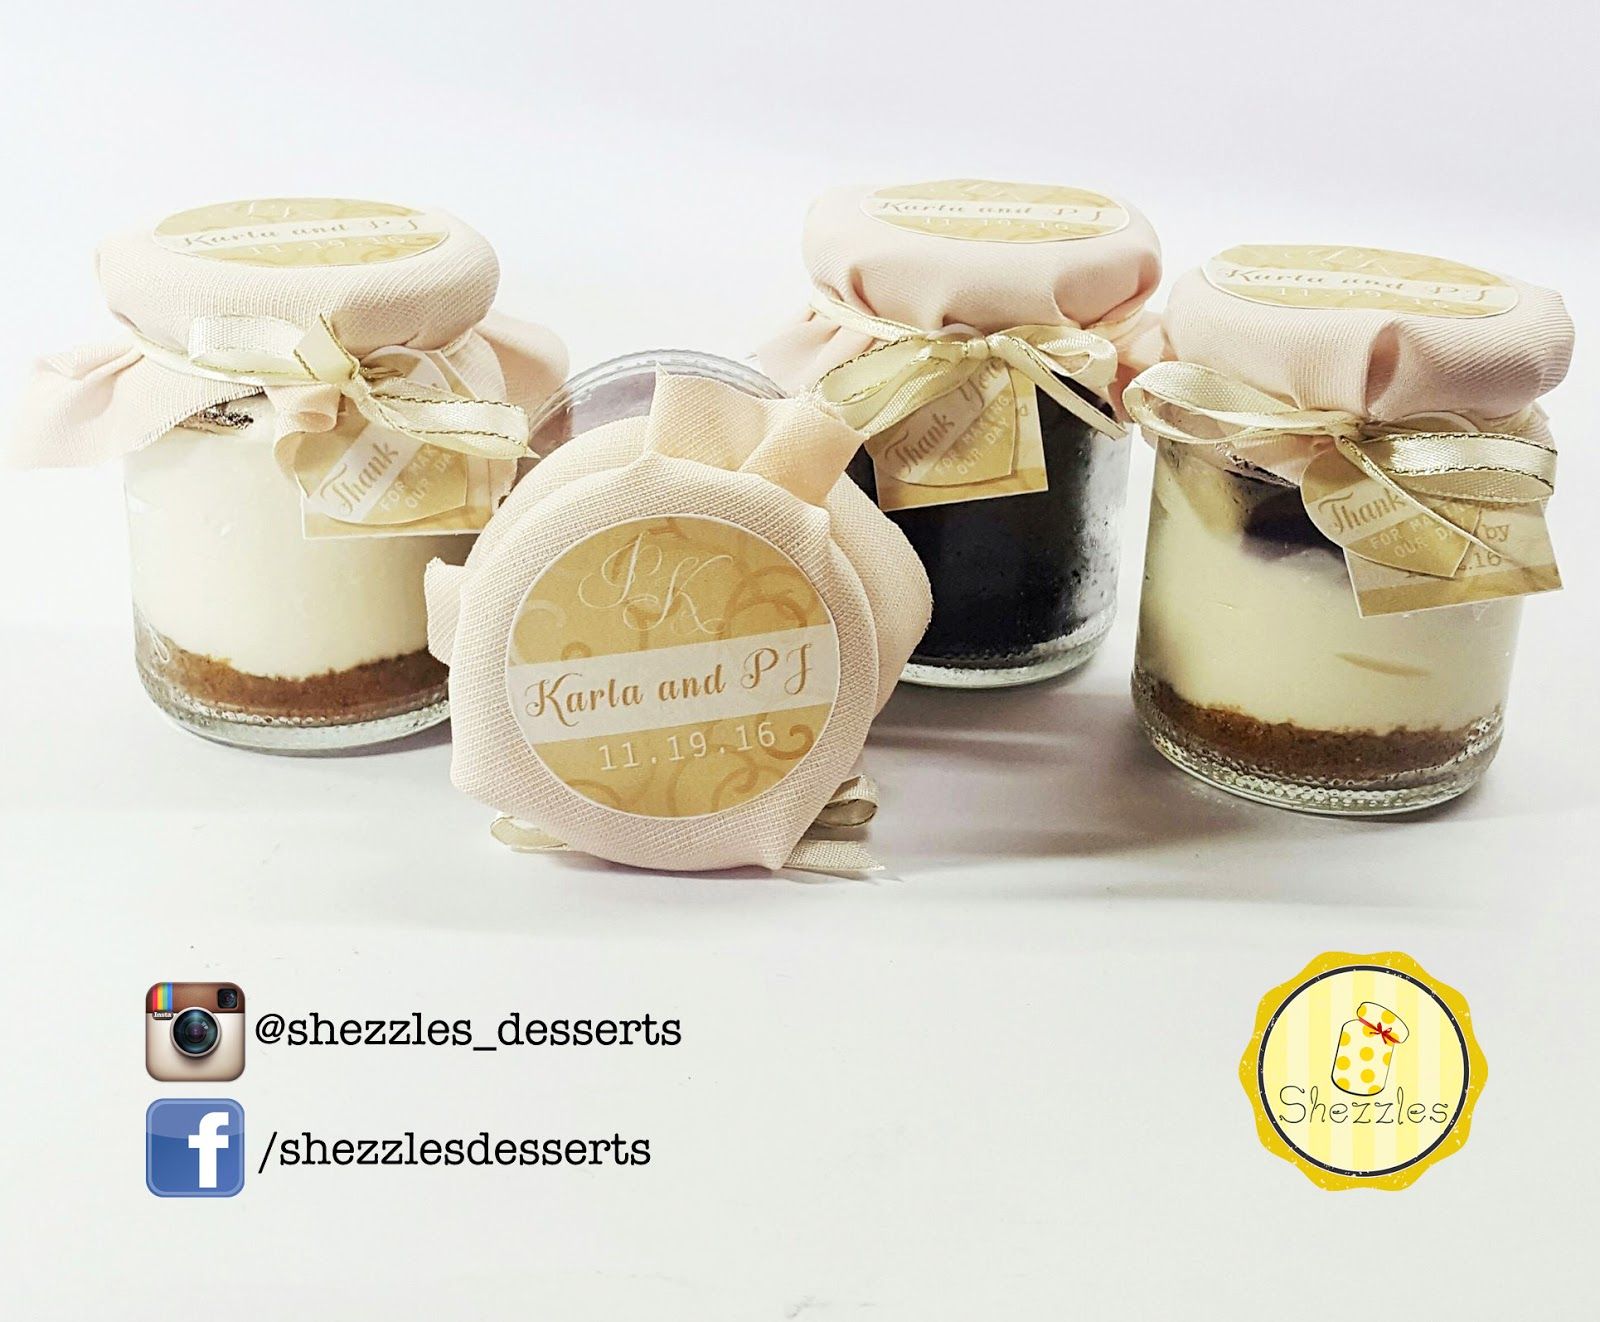 Shezzles | Dessert in a jar: PJ and Karla Wedding Giveaways | 11.19.16